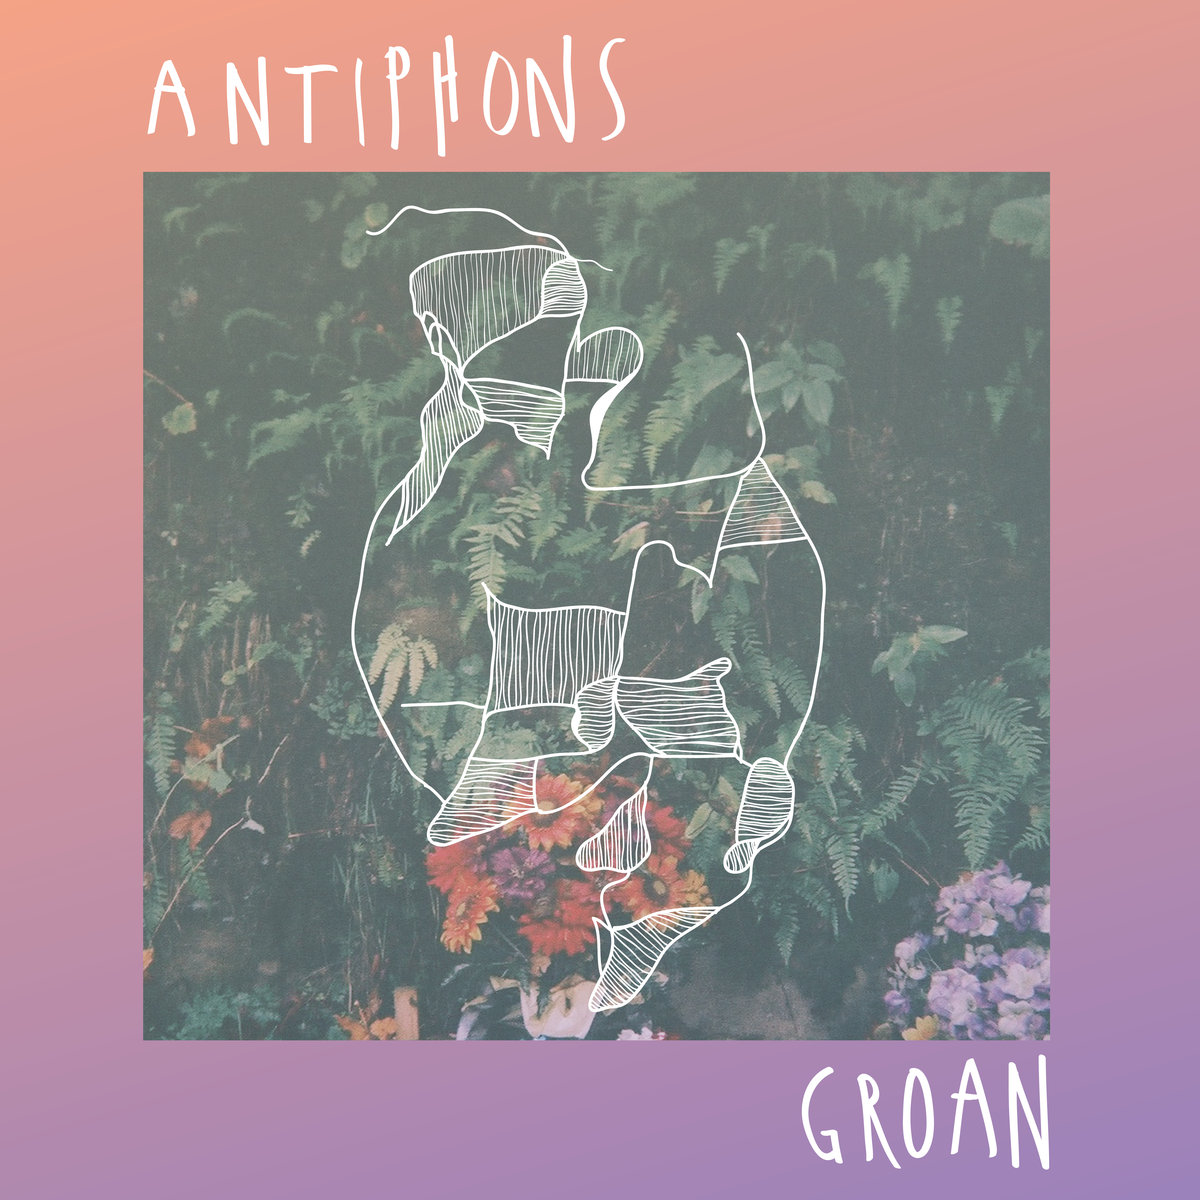 antiphons groan album art